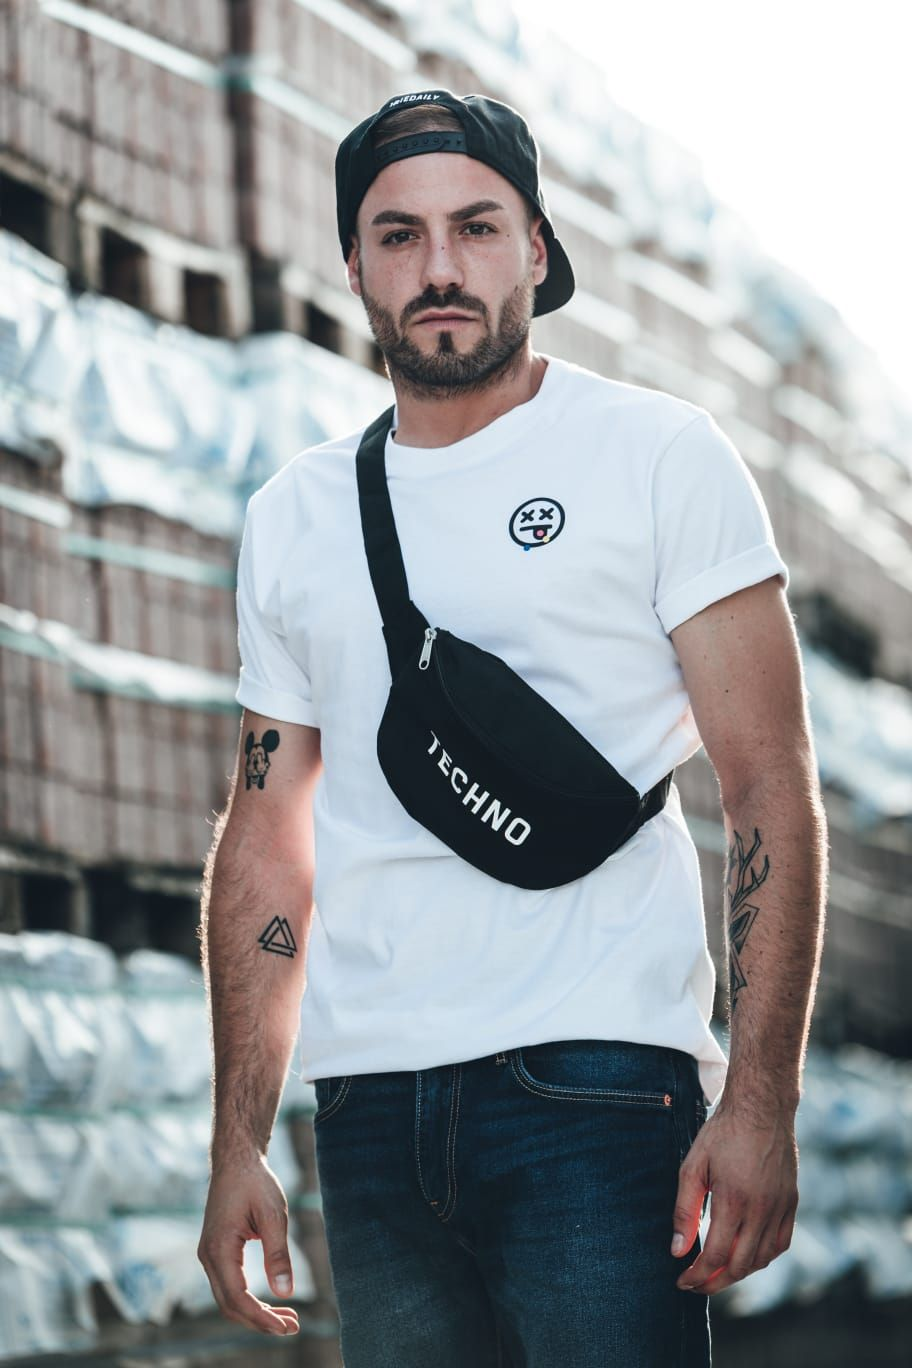 Perfekt für deinen nächsten Rave: Unsere Techno Bauchtasche 👊 #ravexclothing   ⚡🔊 RAVE Clothing® Online-Shop 👉 www.rave-clothing.com  #raveclothing #ravefashion #technoshirt #techno #natureonefestival #technomerchandise #raven #technomusic #technoliebe #rave #raveboy #ravefamily #raveparty #technolife #technolove #technokind #raver #technodance #clubwear #technoboy #electronicmusic #lovetechno #technoparty #ilovetechno #letstechno #festival #ravelife #techhouse #technosquad